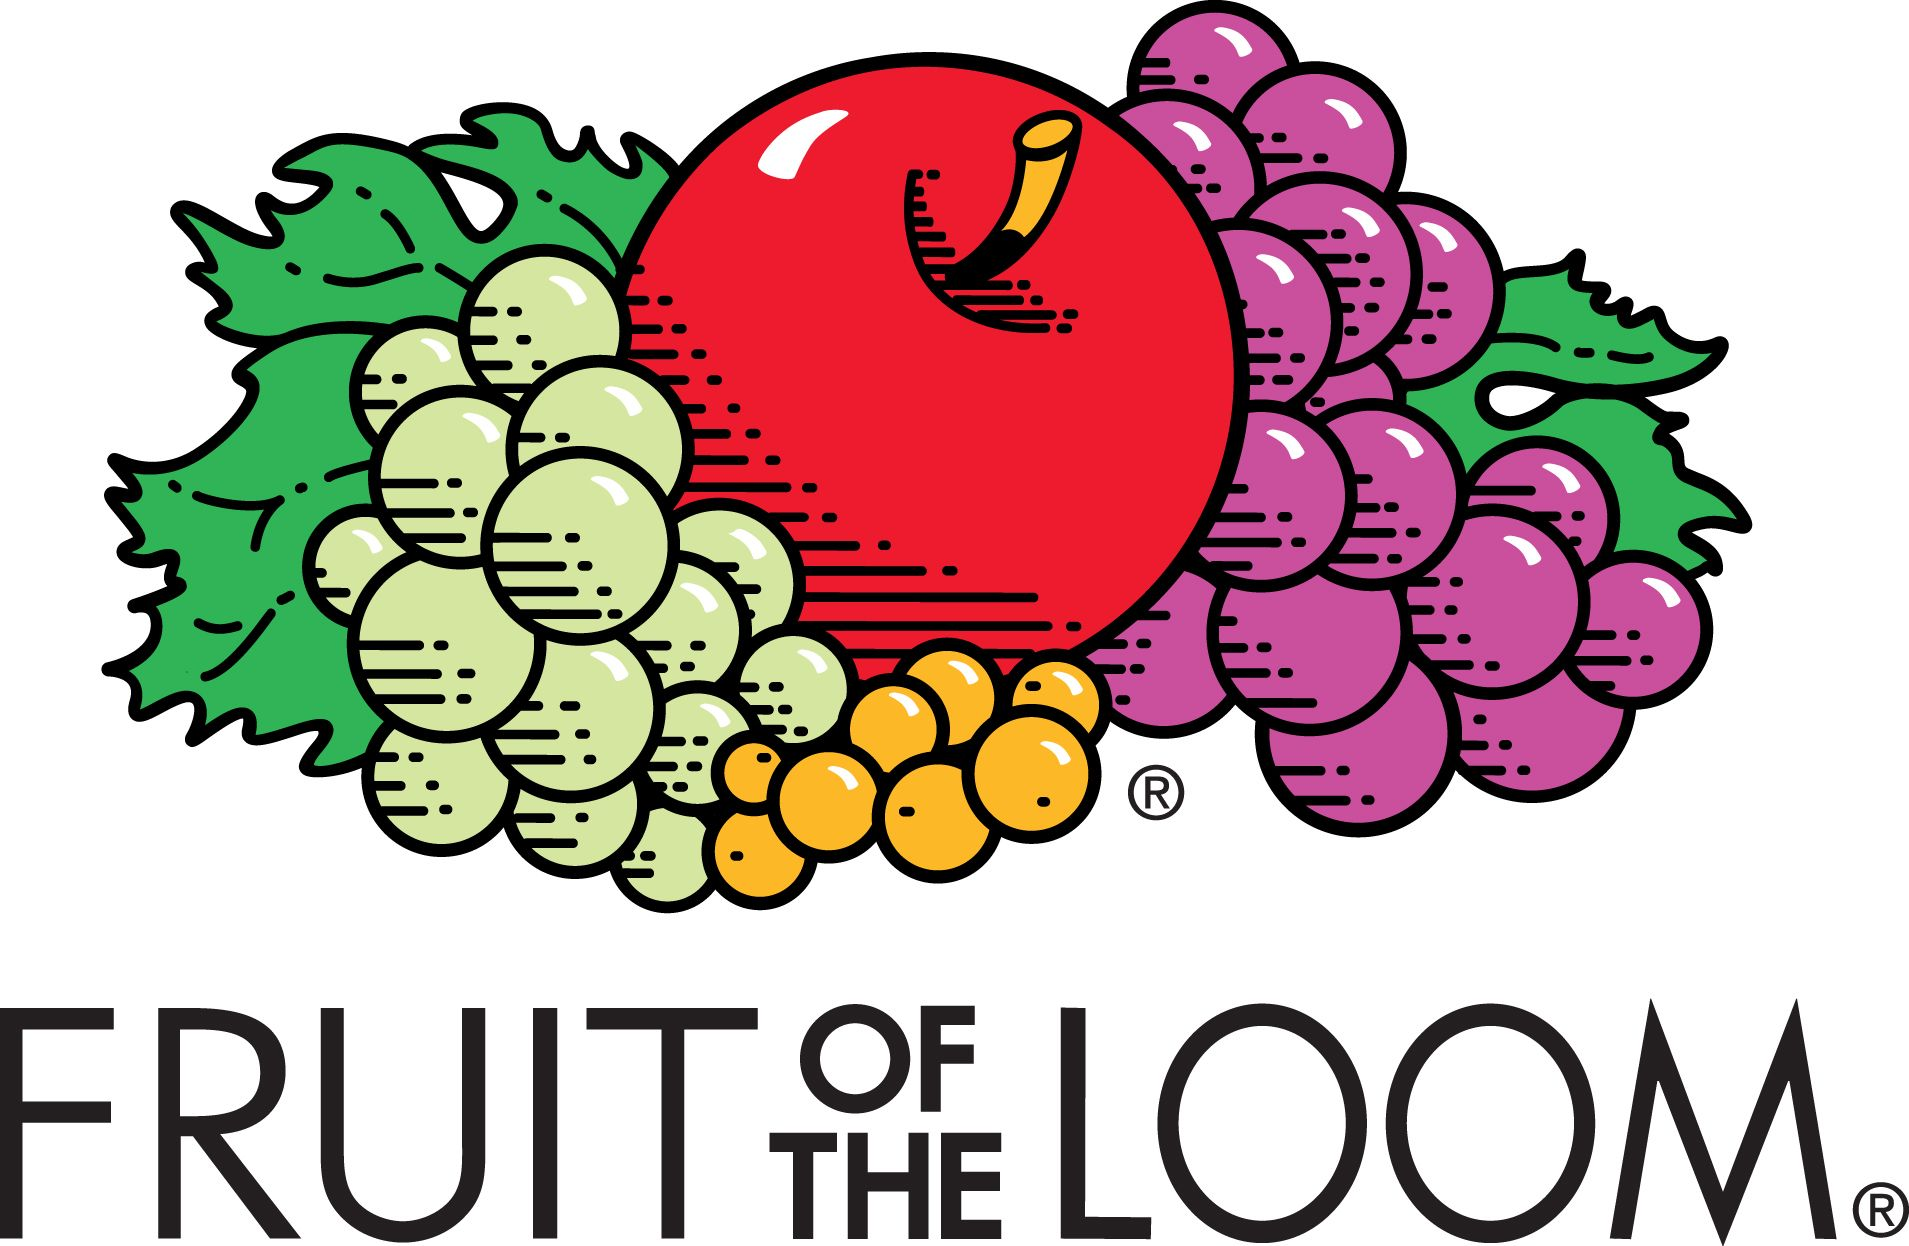 The Fruit of the Loom logo is a fun play on words. The